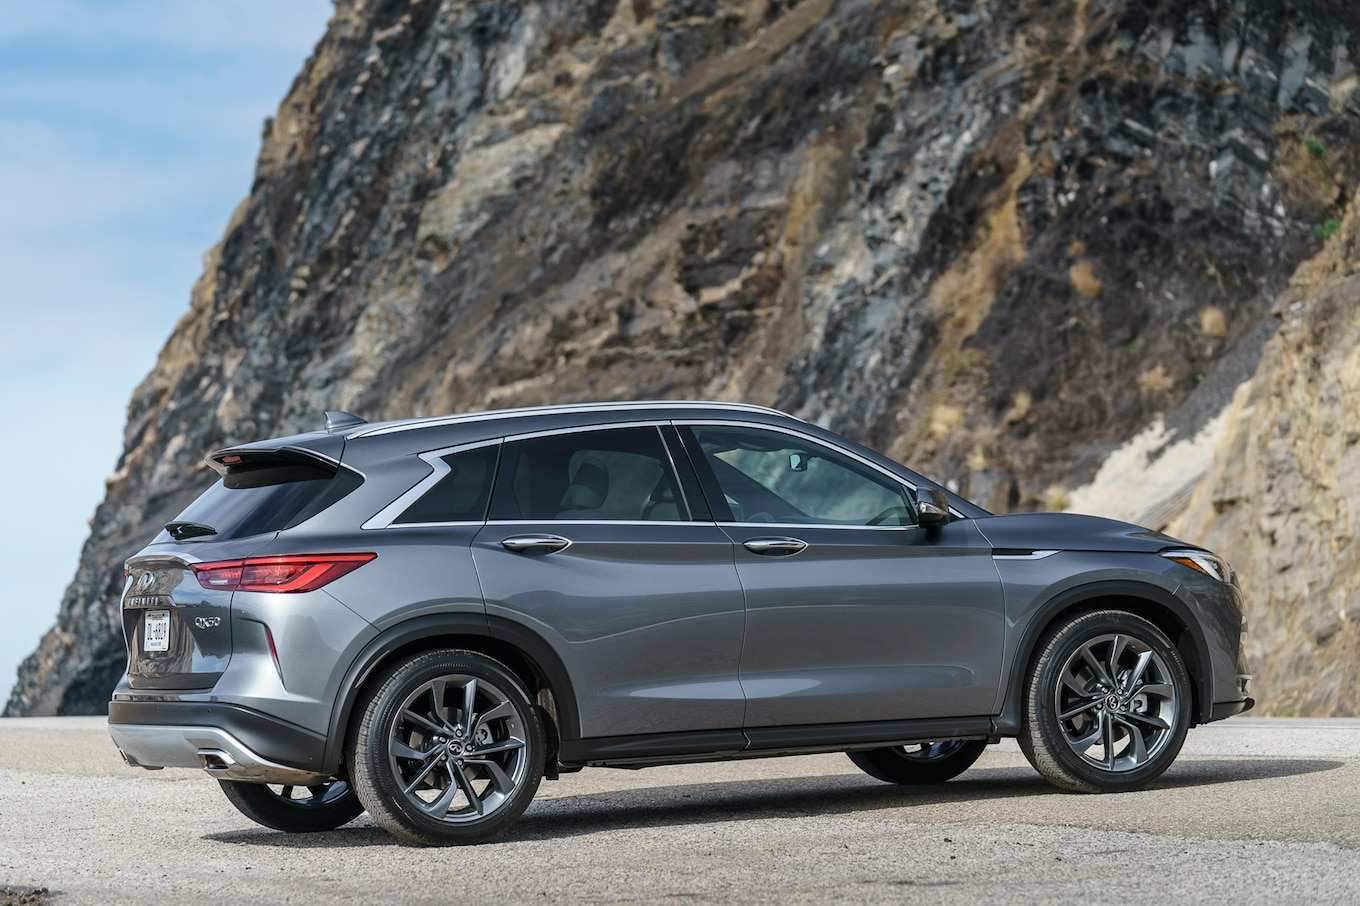 72 New Best 2019 Infiniti Wx60 Redesign Price And Review Speed Test by Best 2019 Infiniti Wx60 Redesign Price And Review